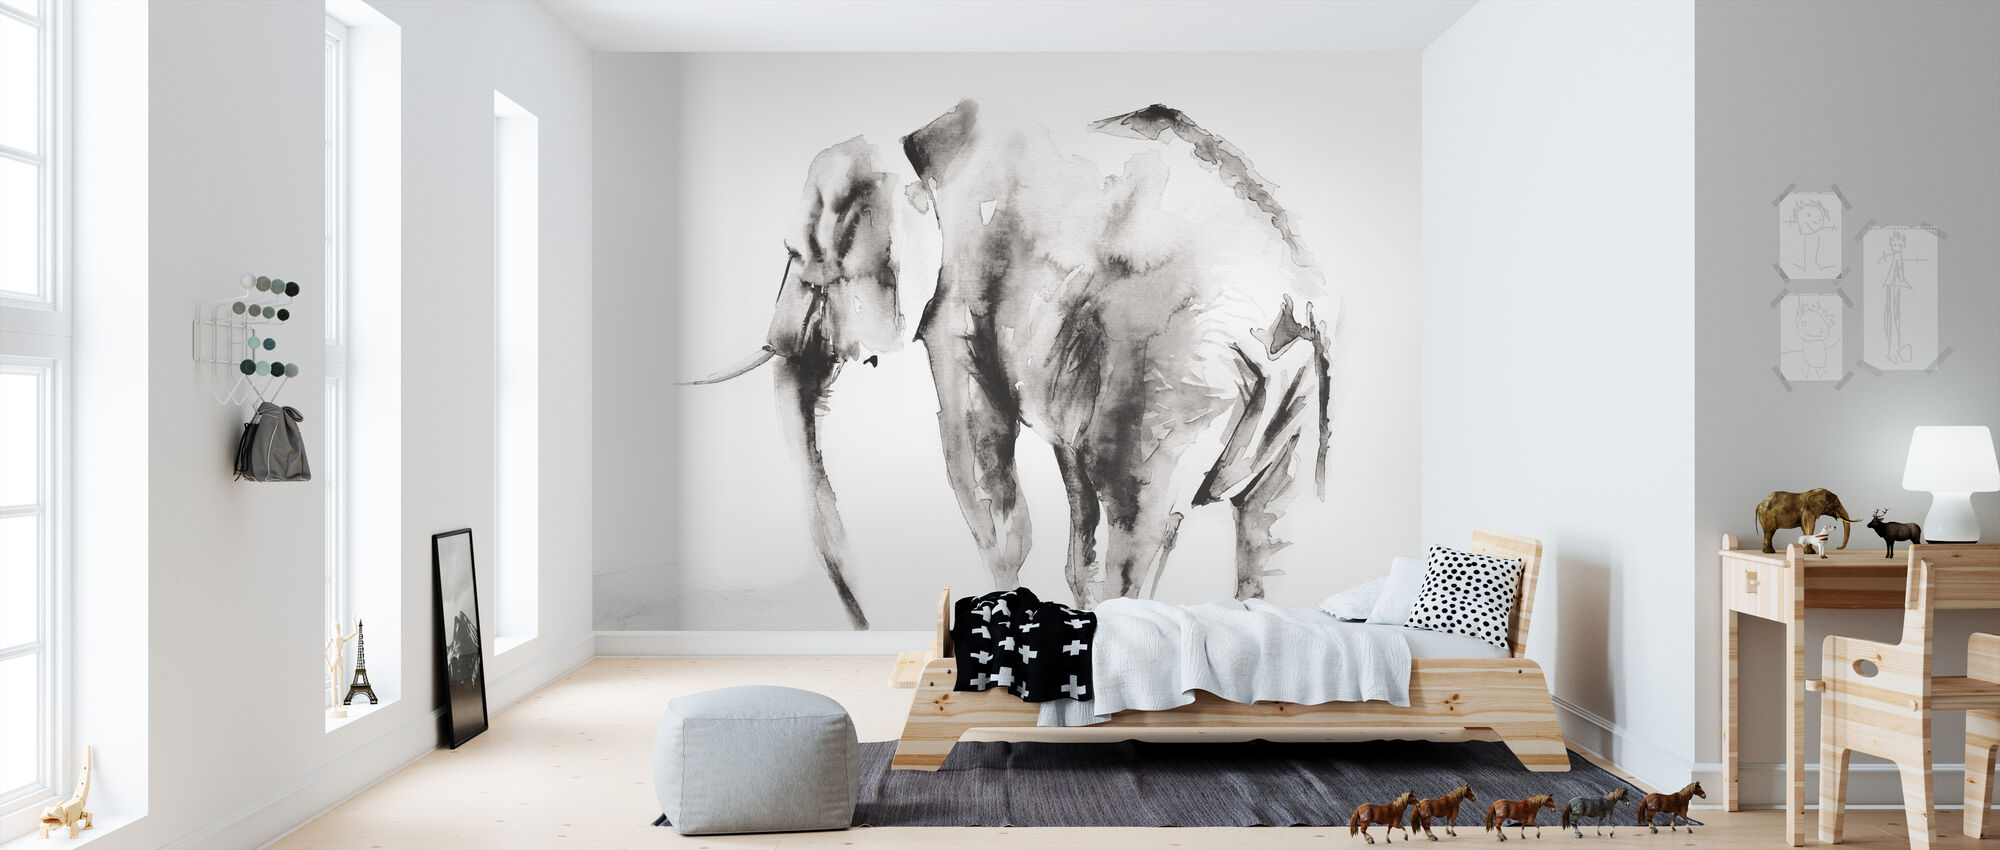 Lone Elephant Gray Crop - Wallpaper - Kids Room